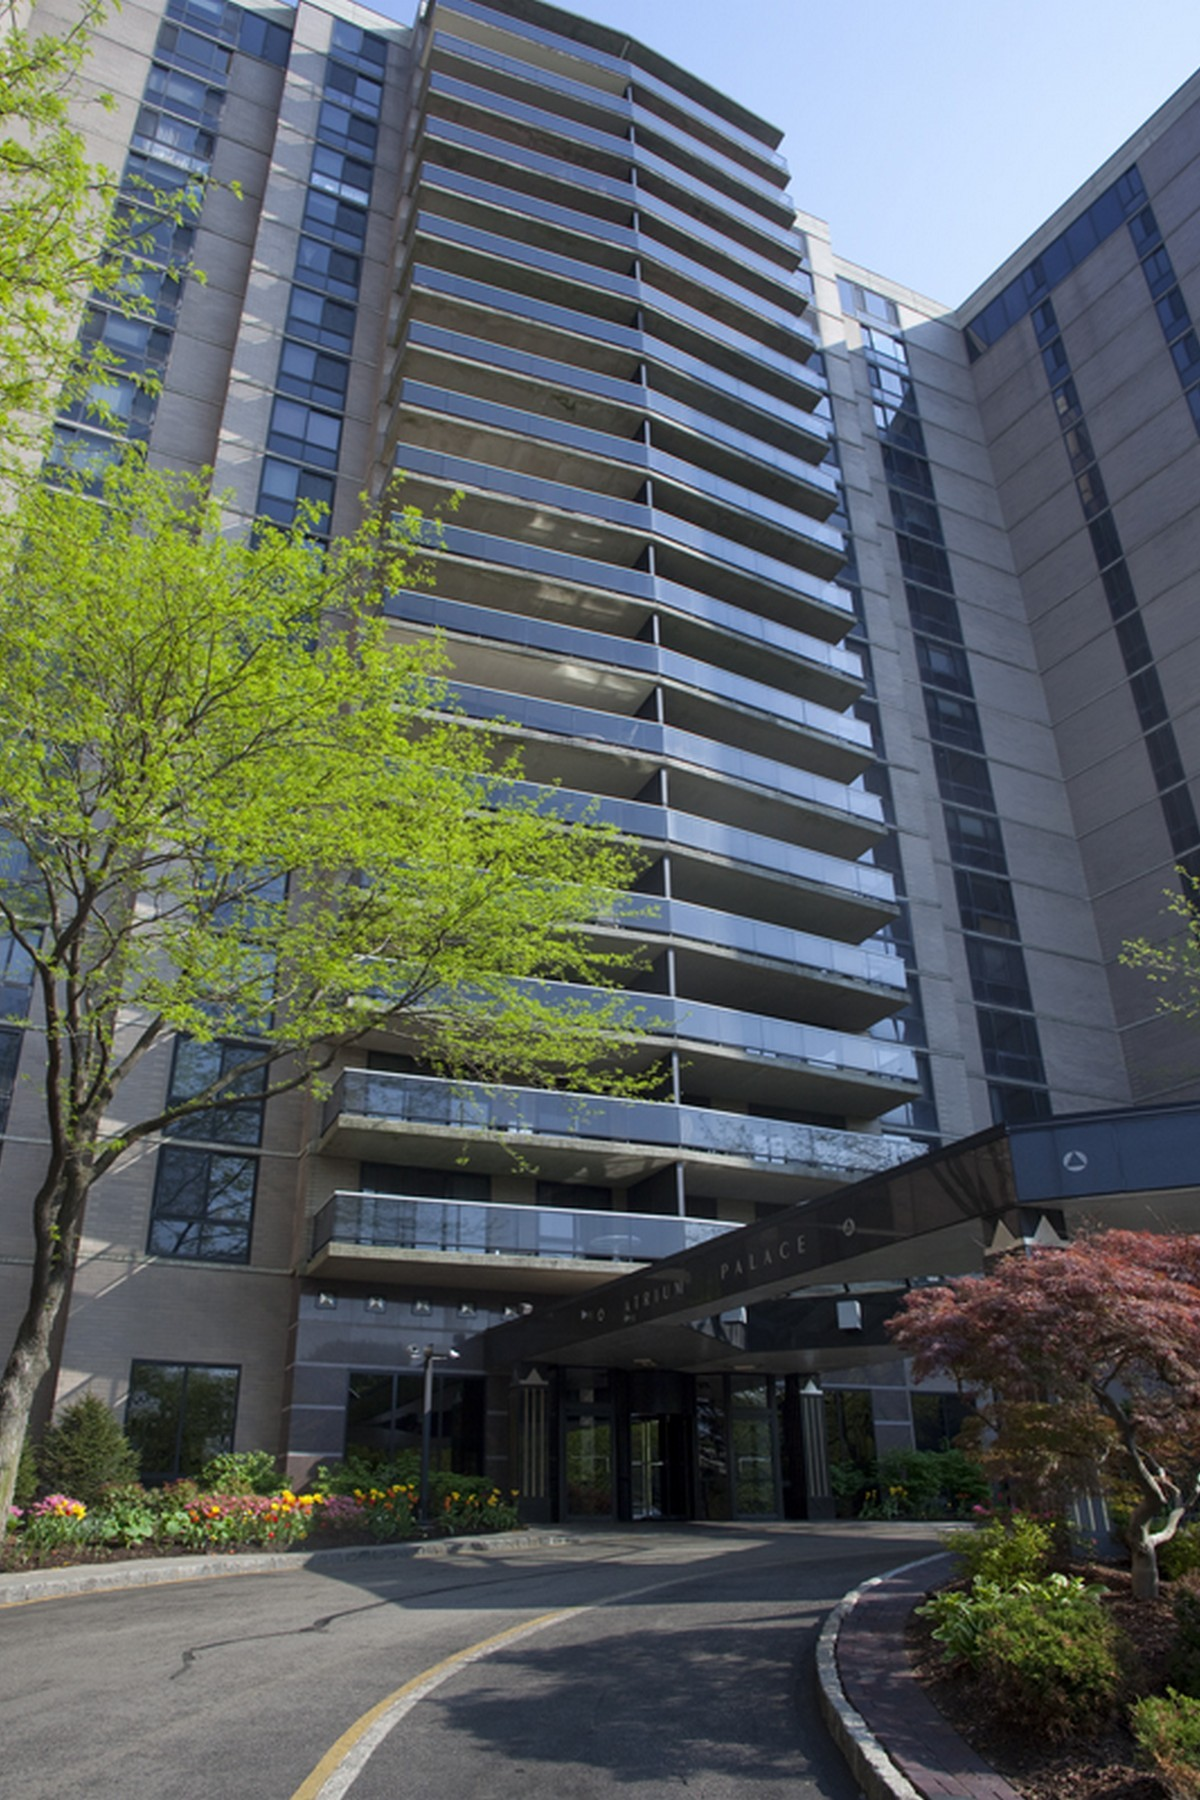 Condominium for Sale at The Atrium 1512 Palisade Avenue, #PHL Fort Lee, New Jersey 07024 United States